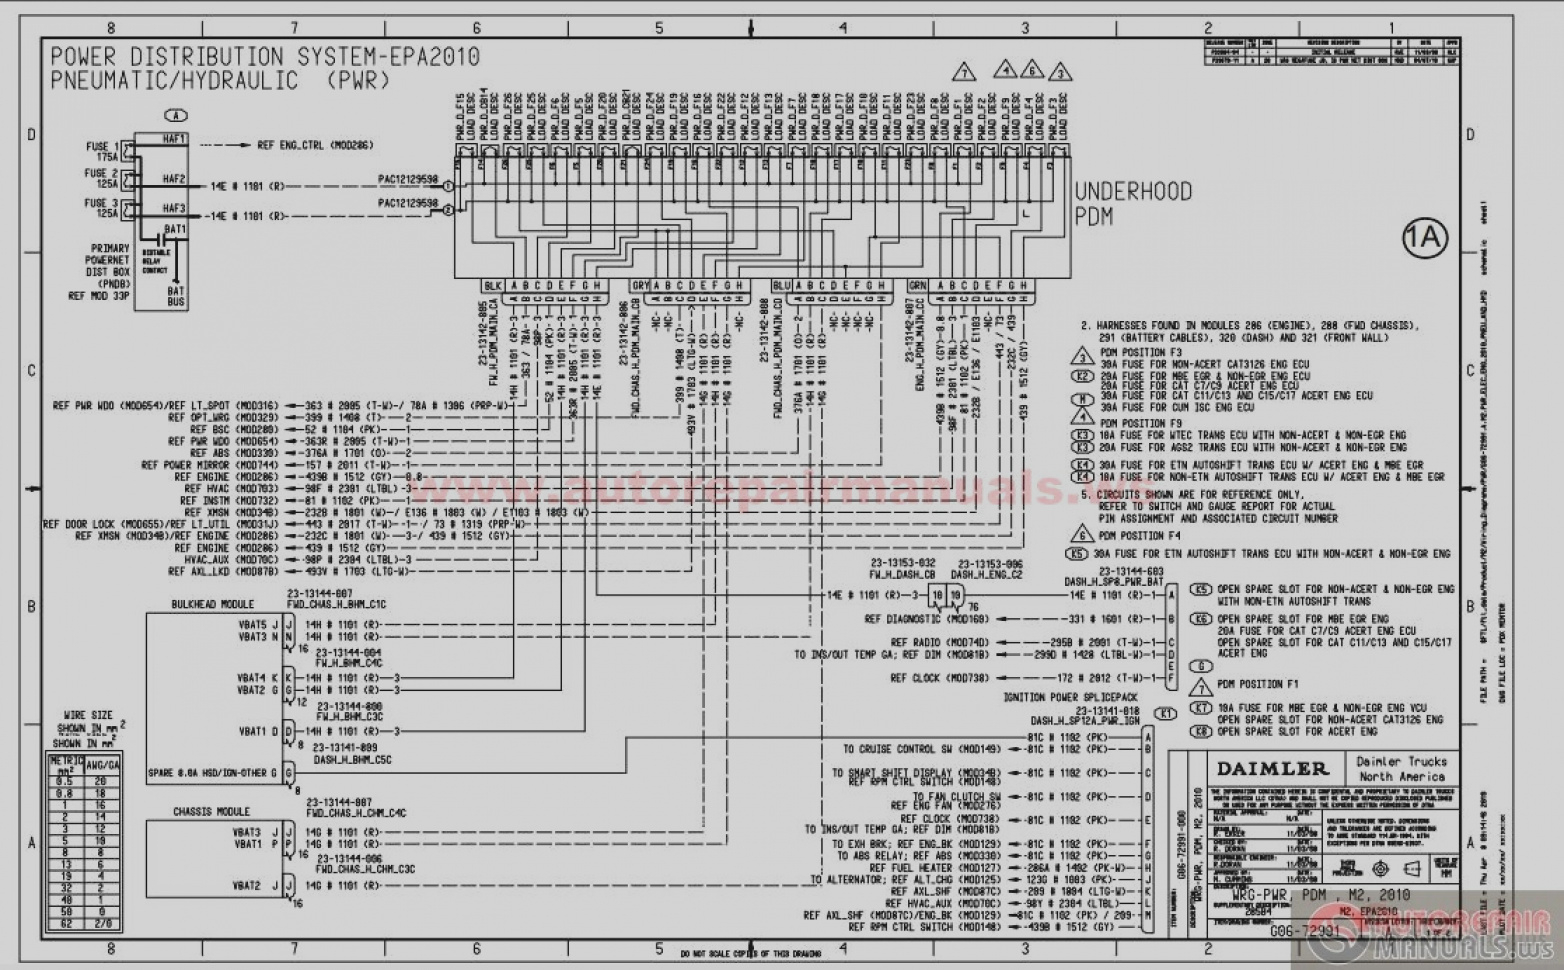 freightliner radio wiring diagram 2005 ford five hundred stereo cascadia gallery download diagrams colombia u2022 rh